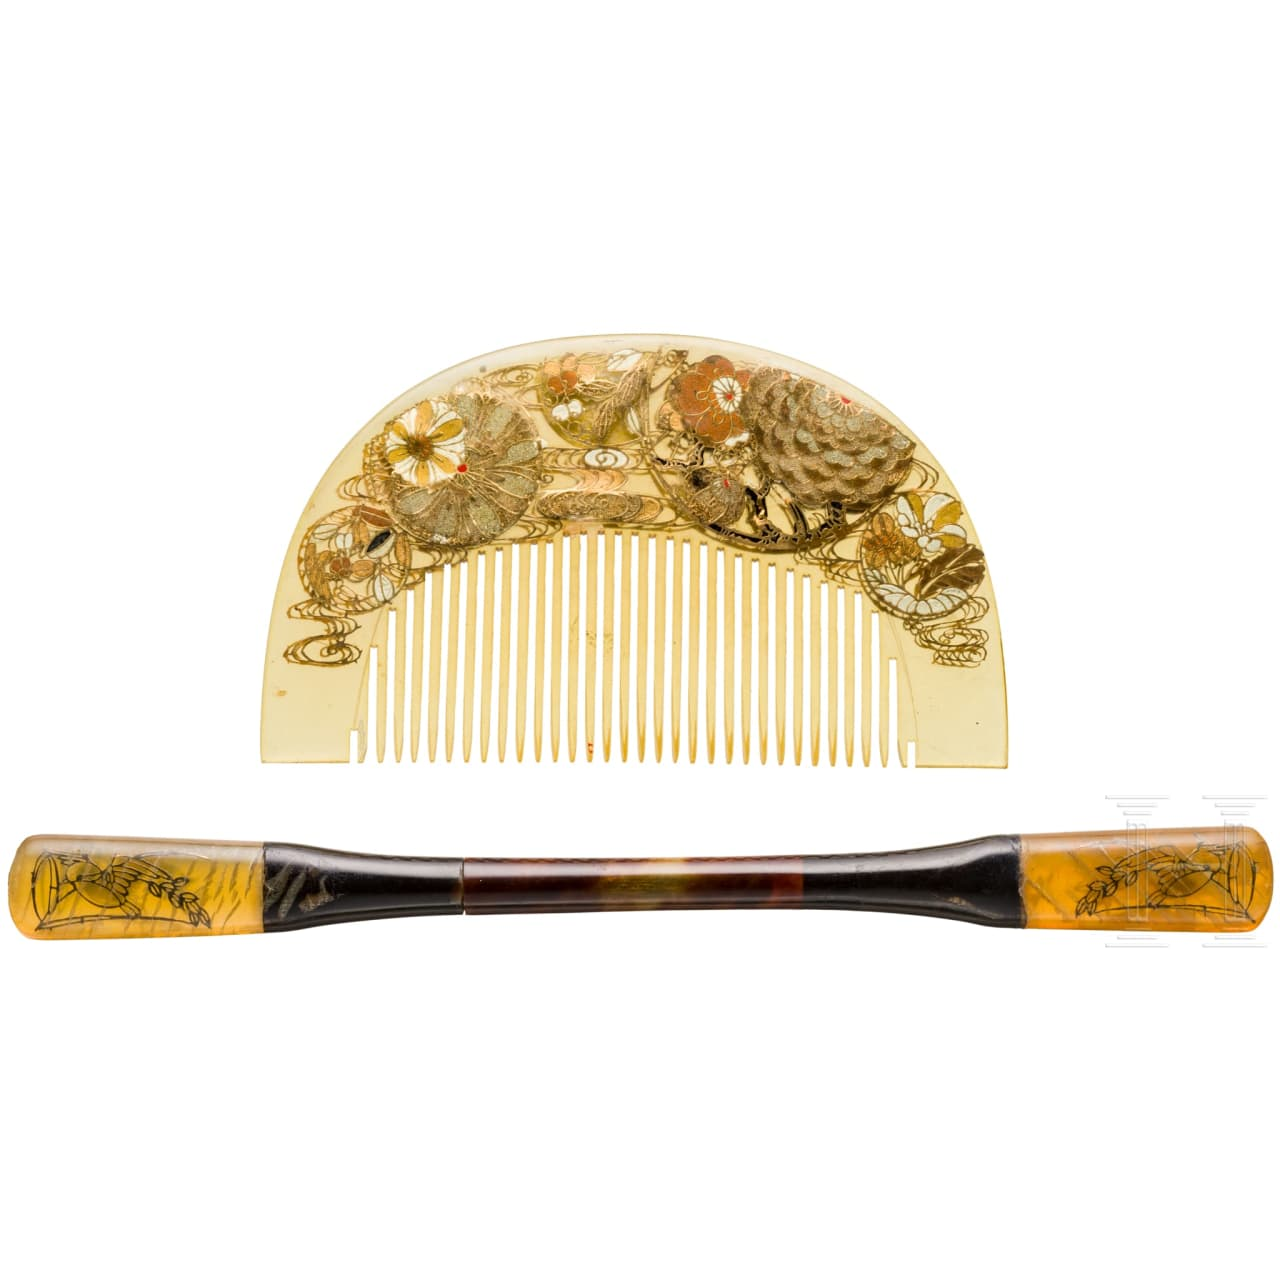 A Kazashi comb and a Kogai, end of Meiji-/beginning of Taisho-period